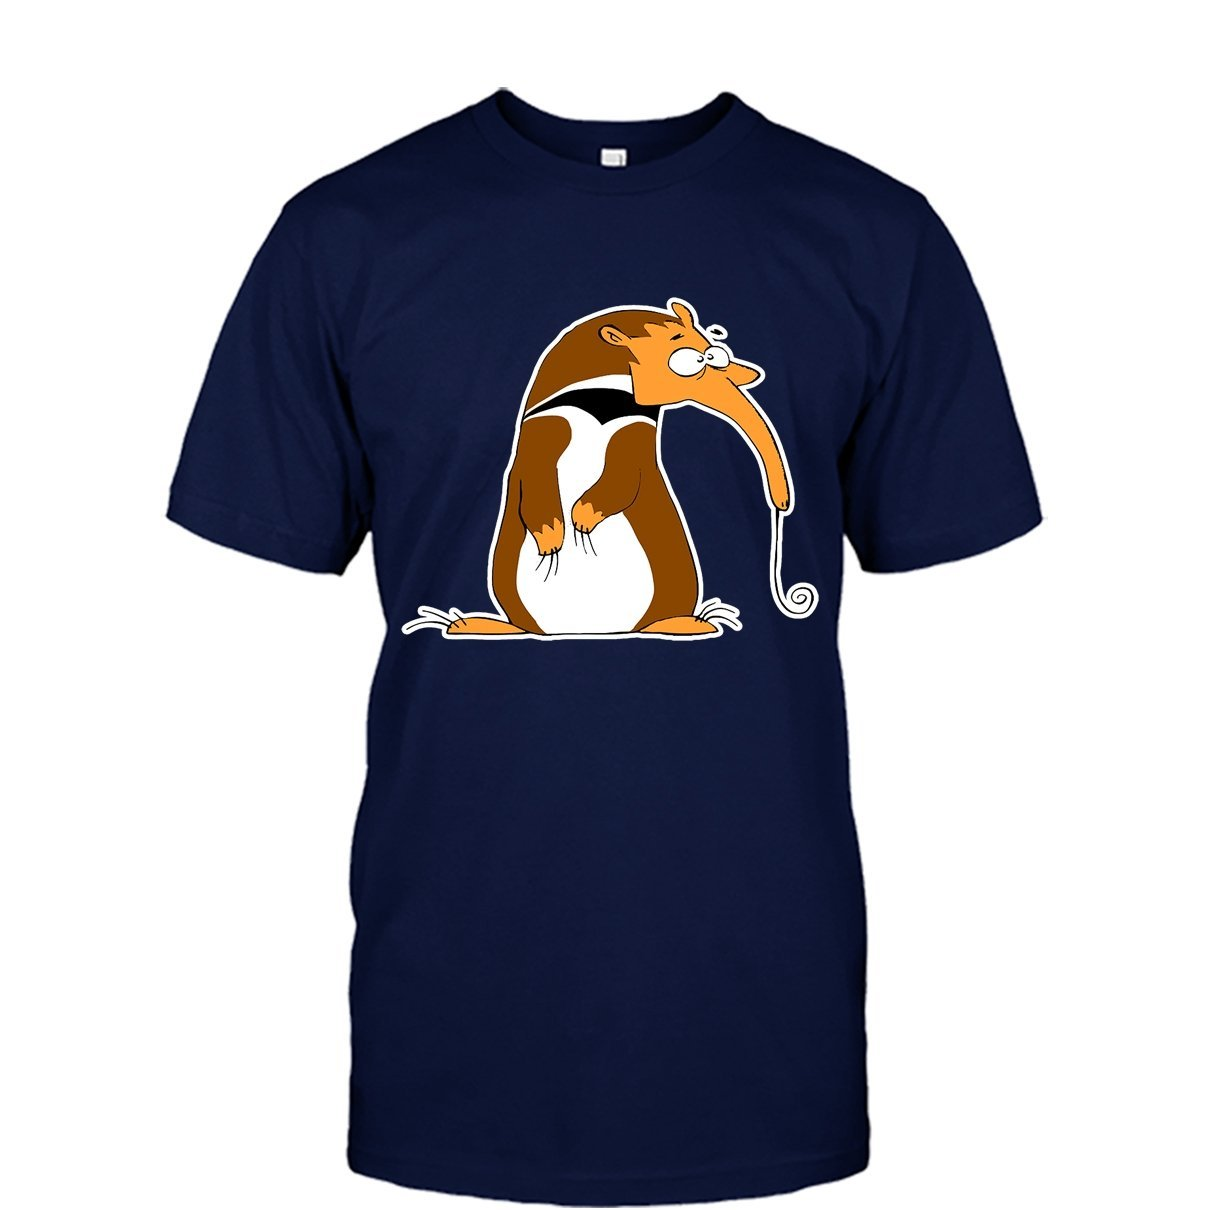 Anteater Emoji Tee Shirt Design for Men and Women Anteater Cool Tshirt